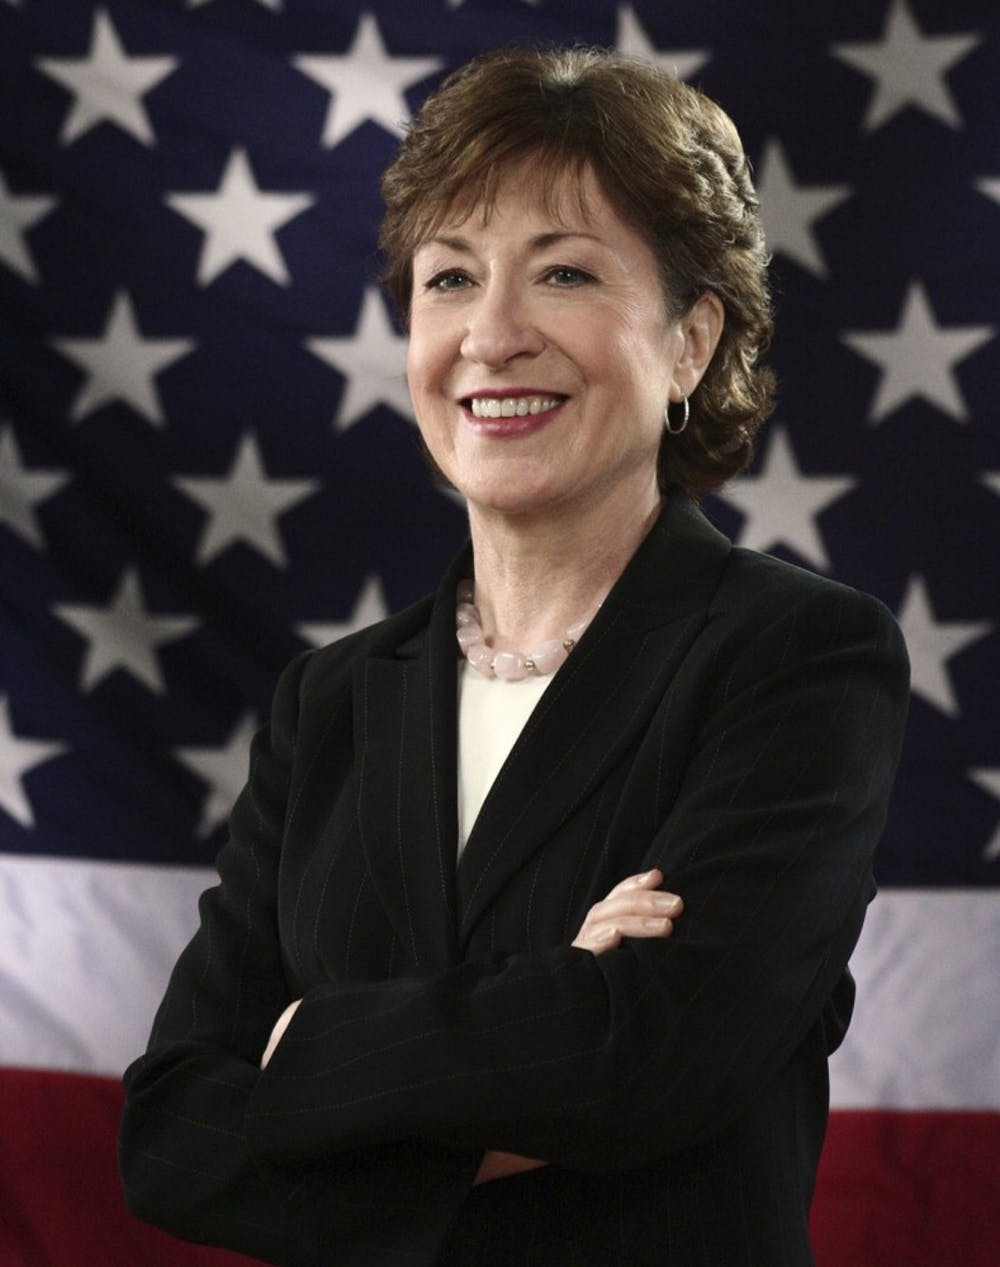 Senator Susan Collins to speak at first KPU event of the year